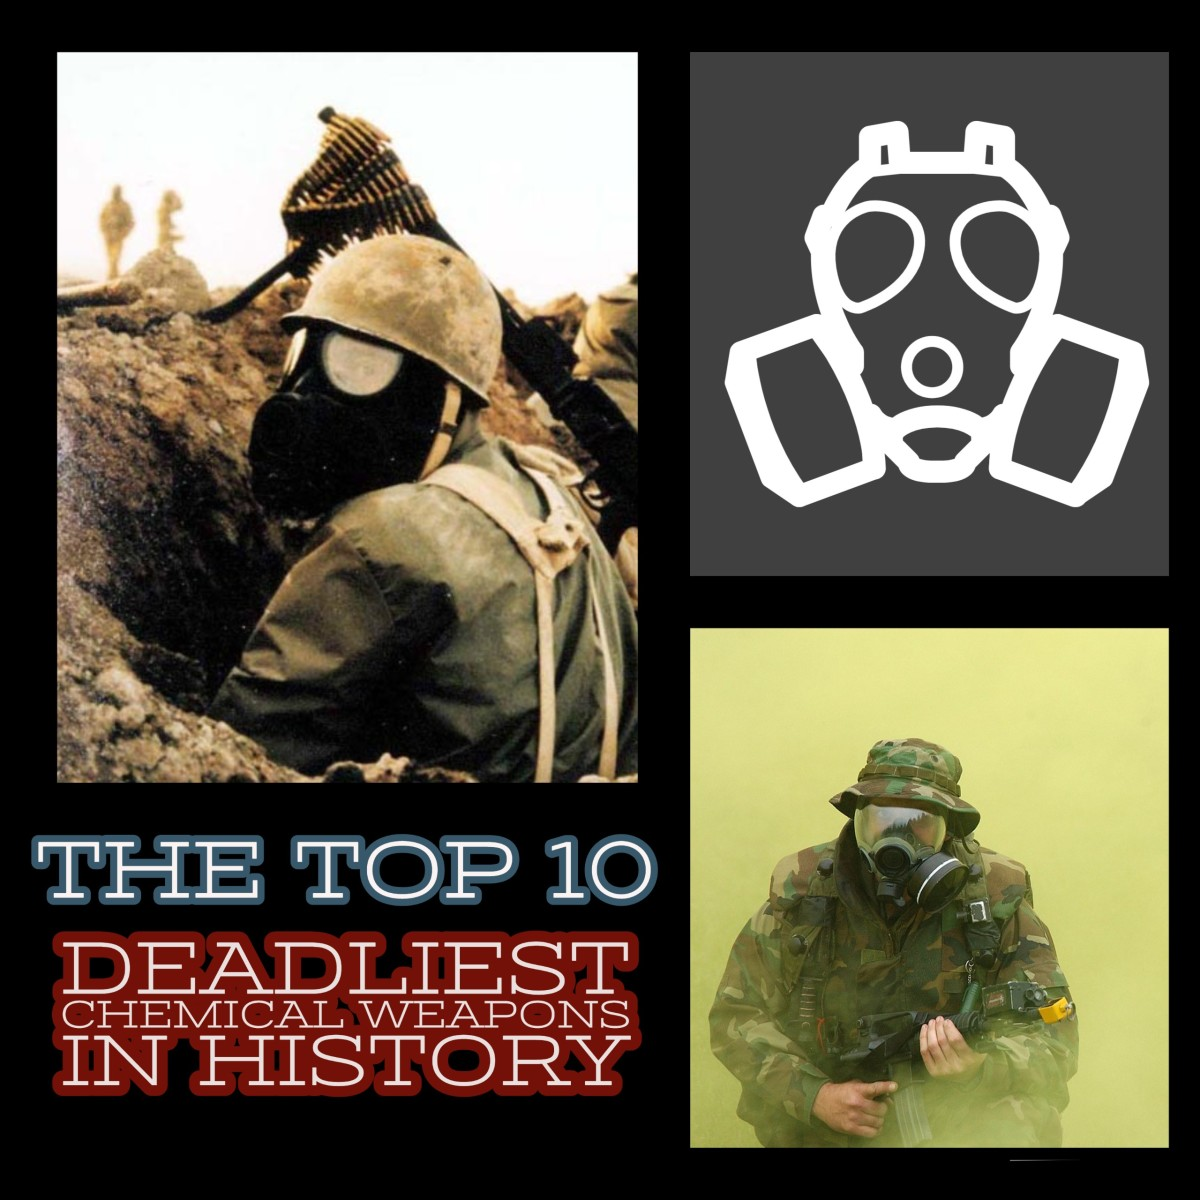 The Top 10 Deadliest Chemical Weapons in History.